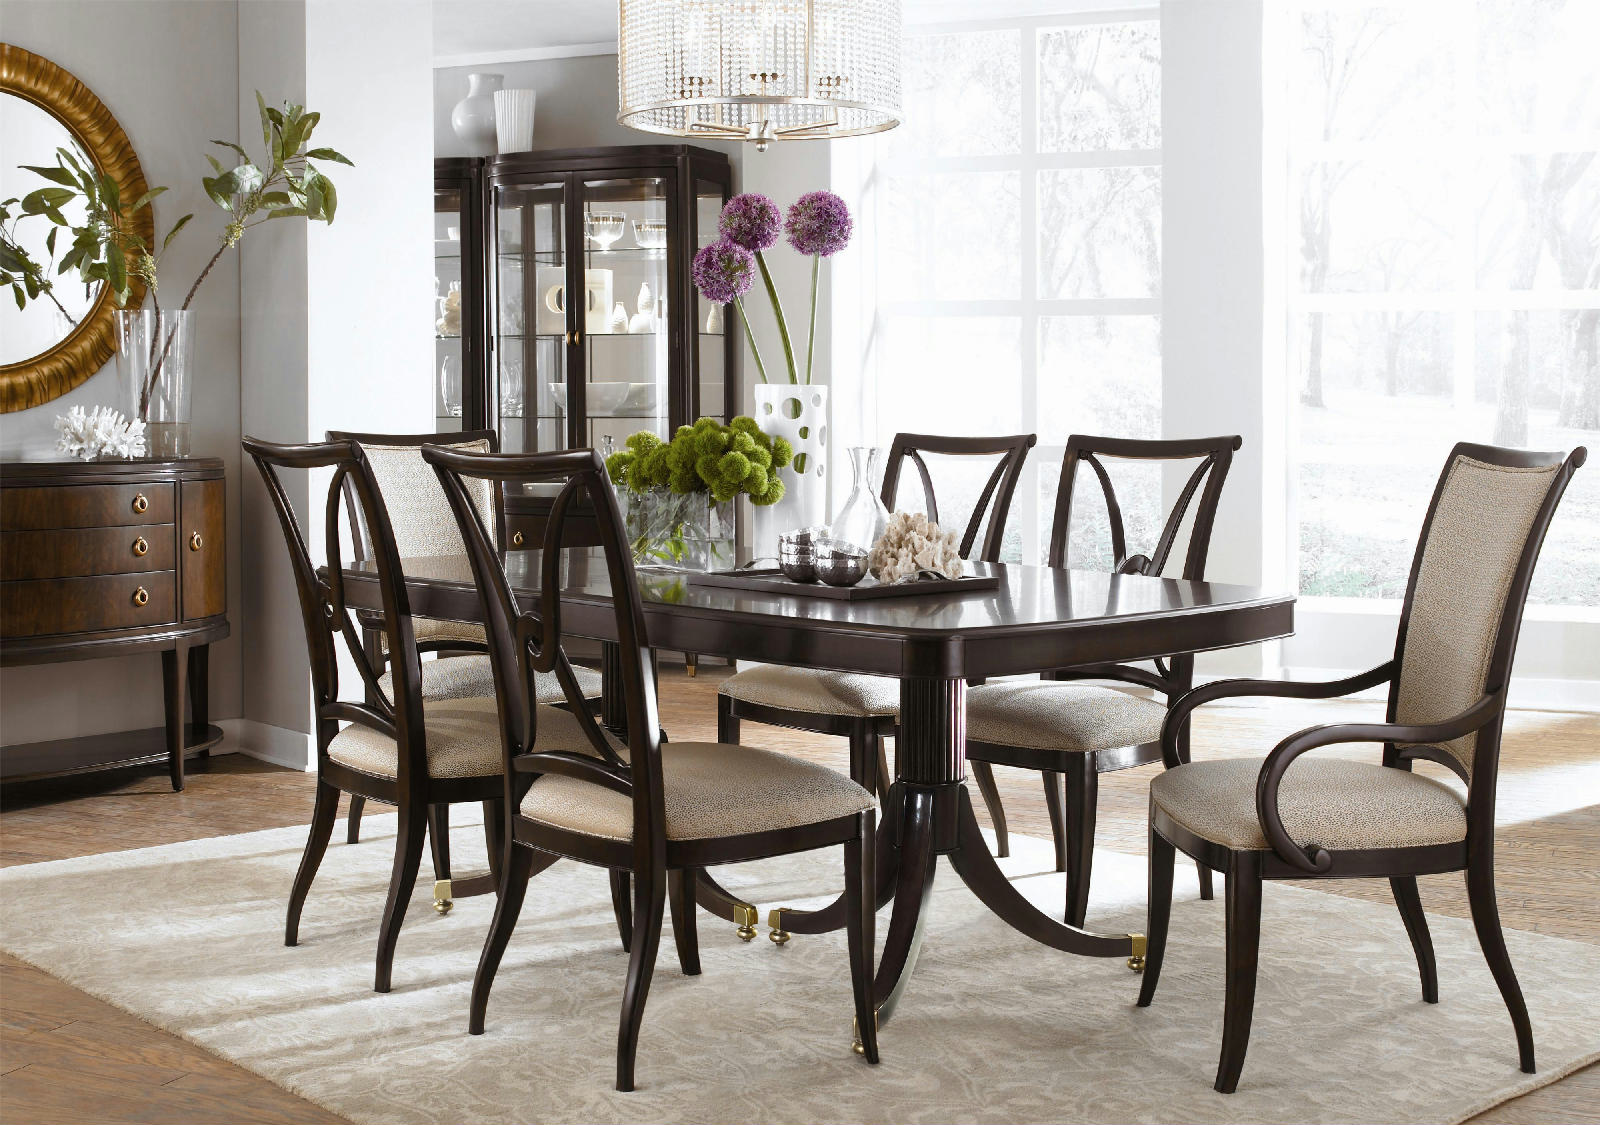 Thomasville Dining Room Sets Thomasville Furniture Set Of 6 Studio 455 Dining Chairs Choose